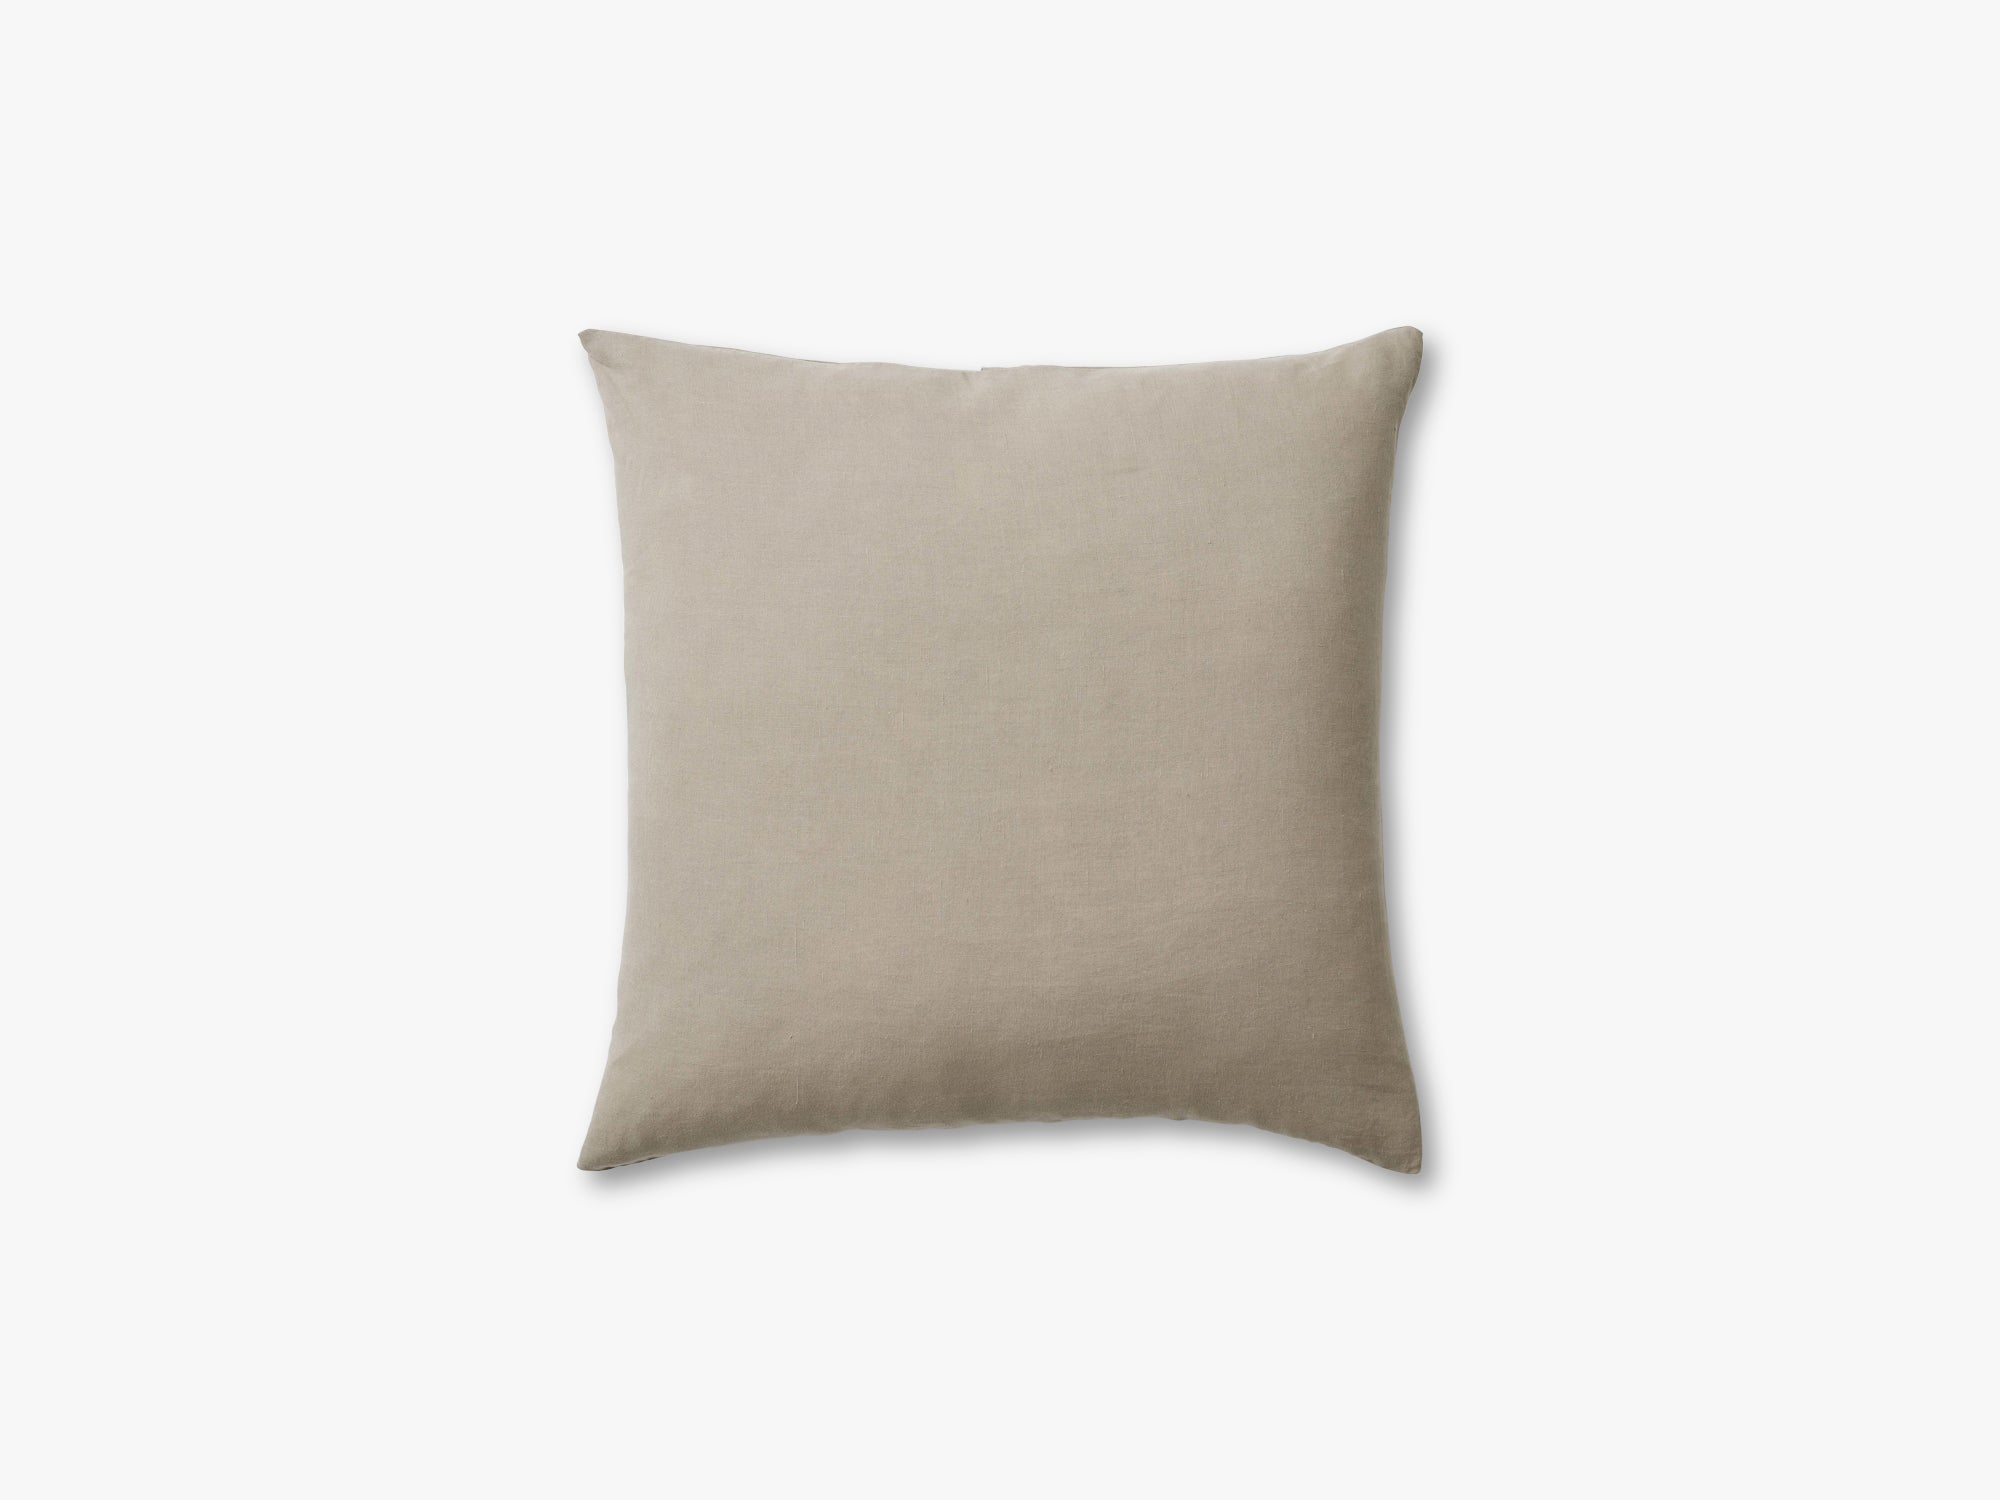 Collect Cushion SC29 - 65x65, Sand/Linen fra &tradition